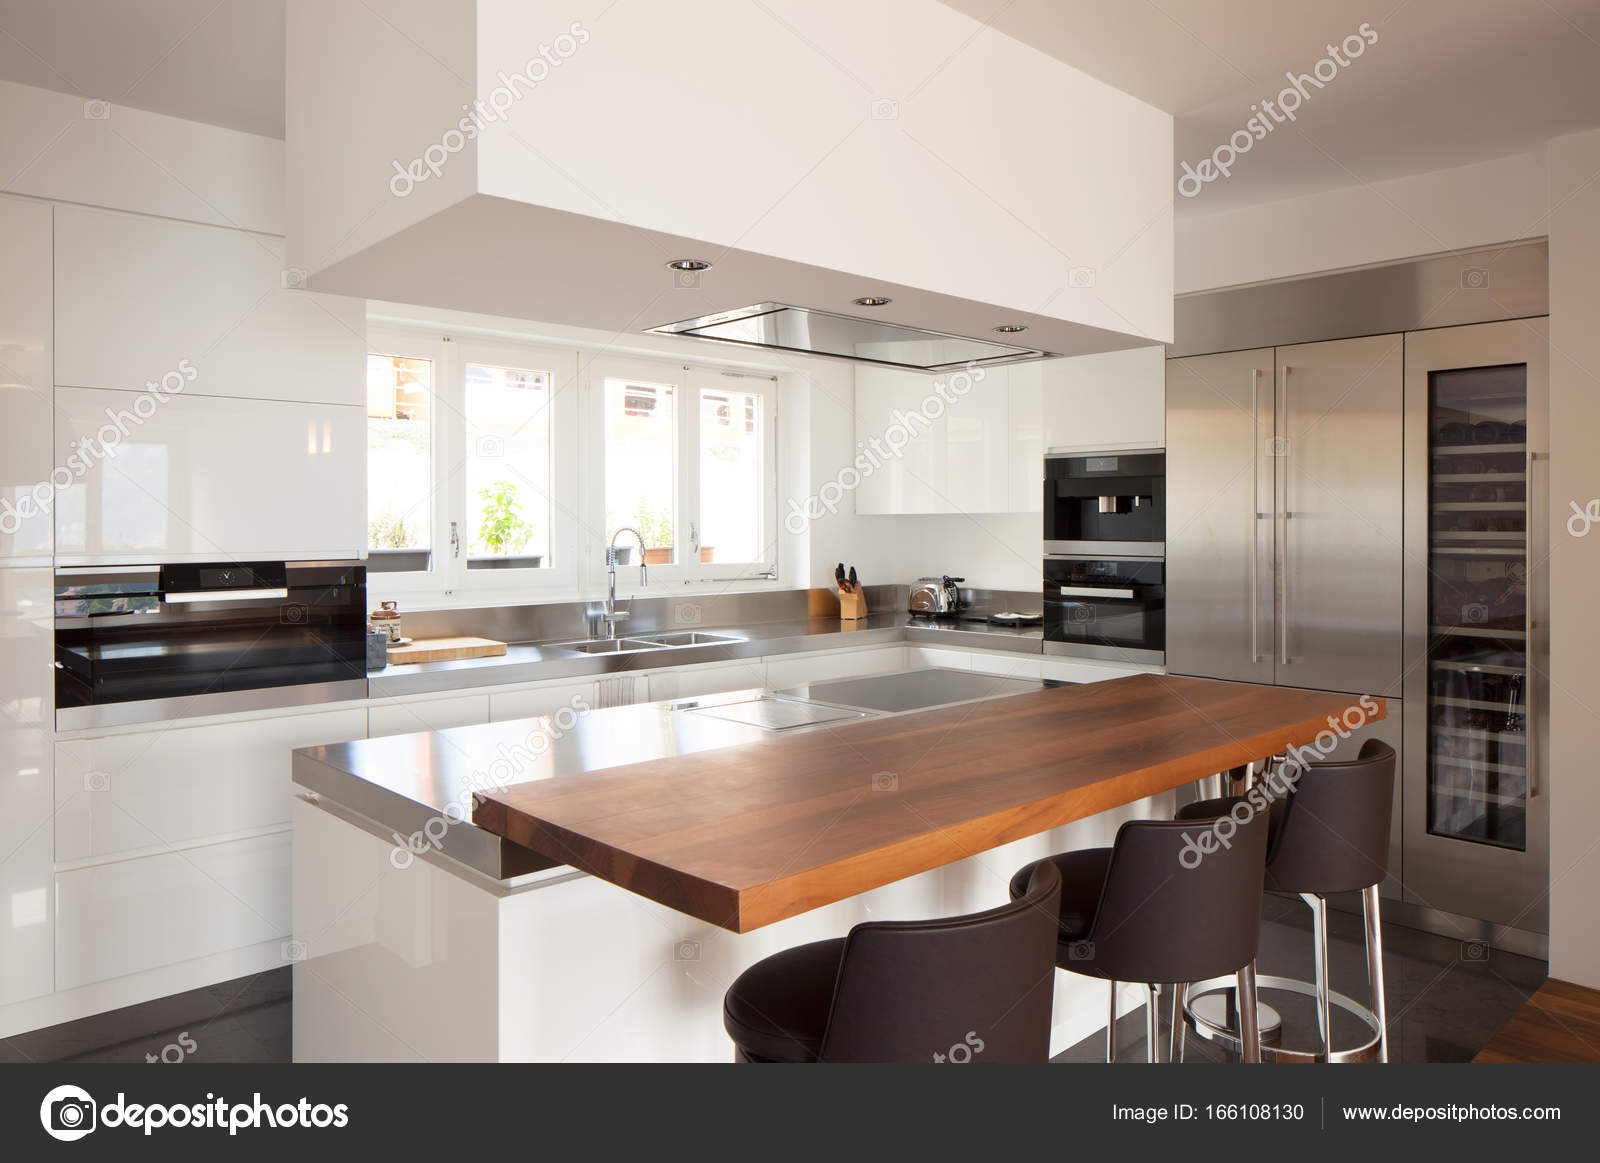 Moderne Küche in Luxus-Appartement. — Stockfoto © Zveiger ...